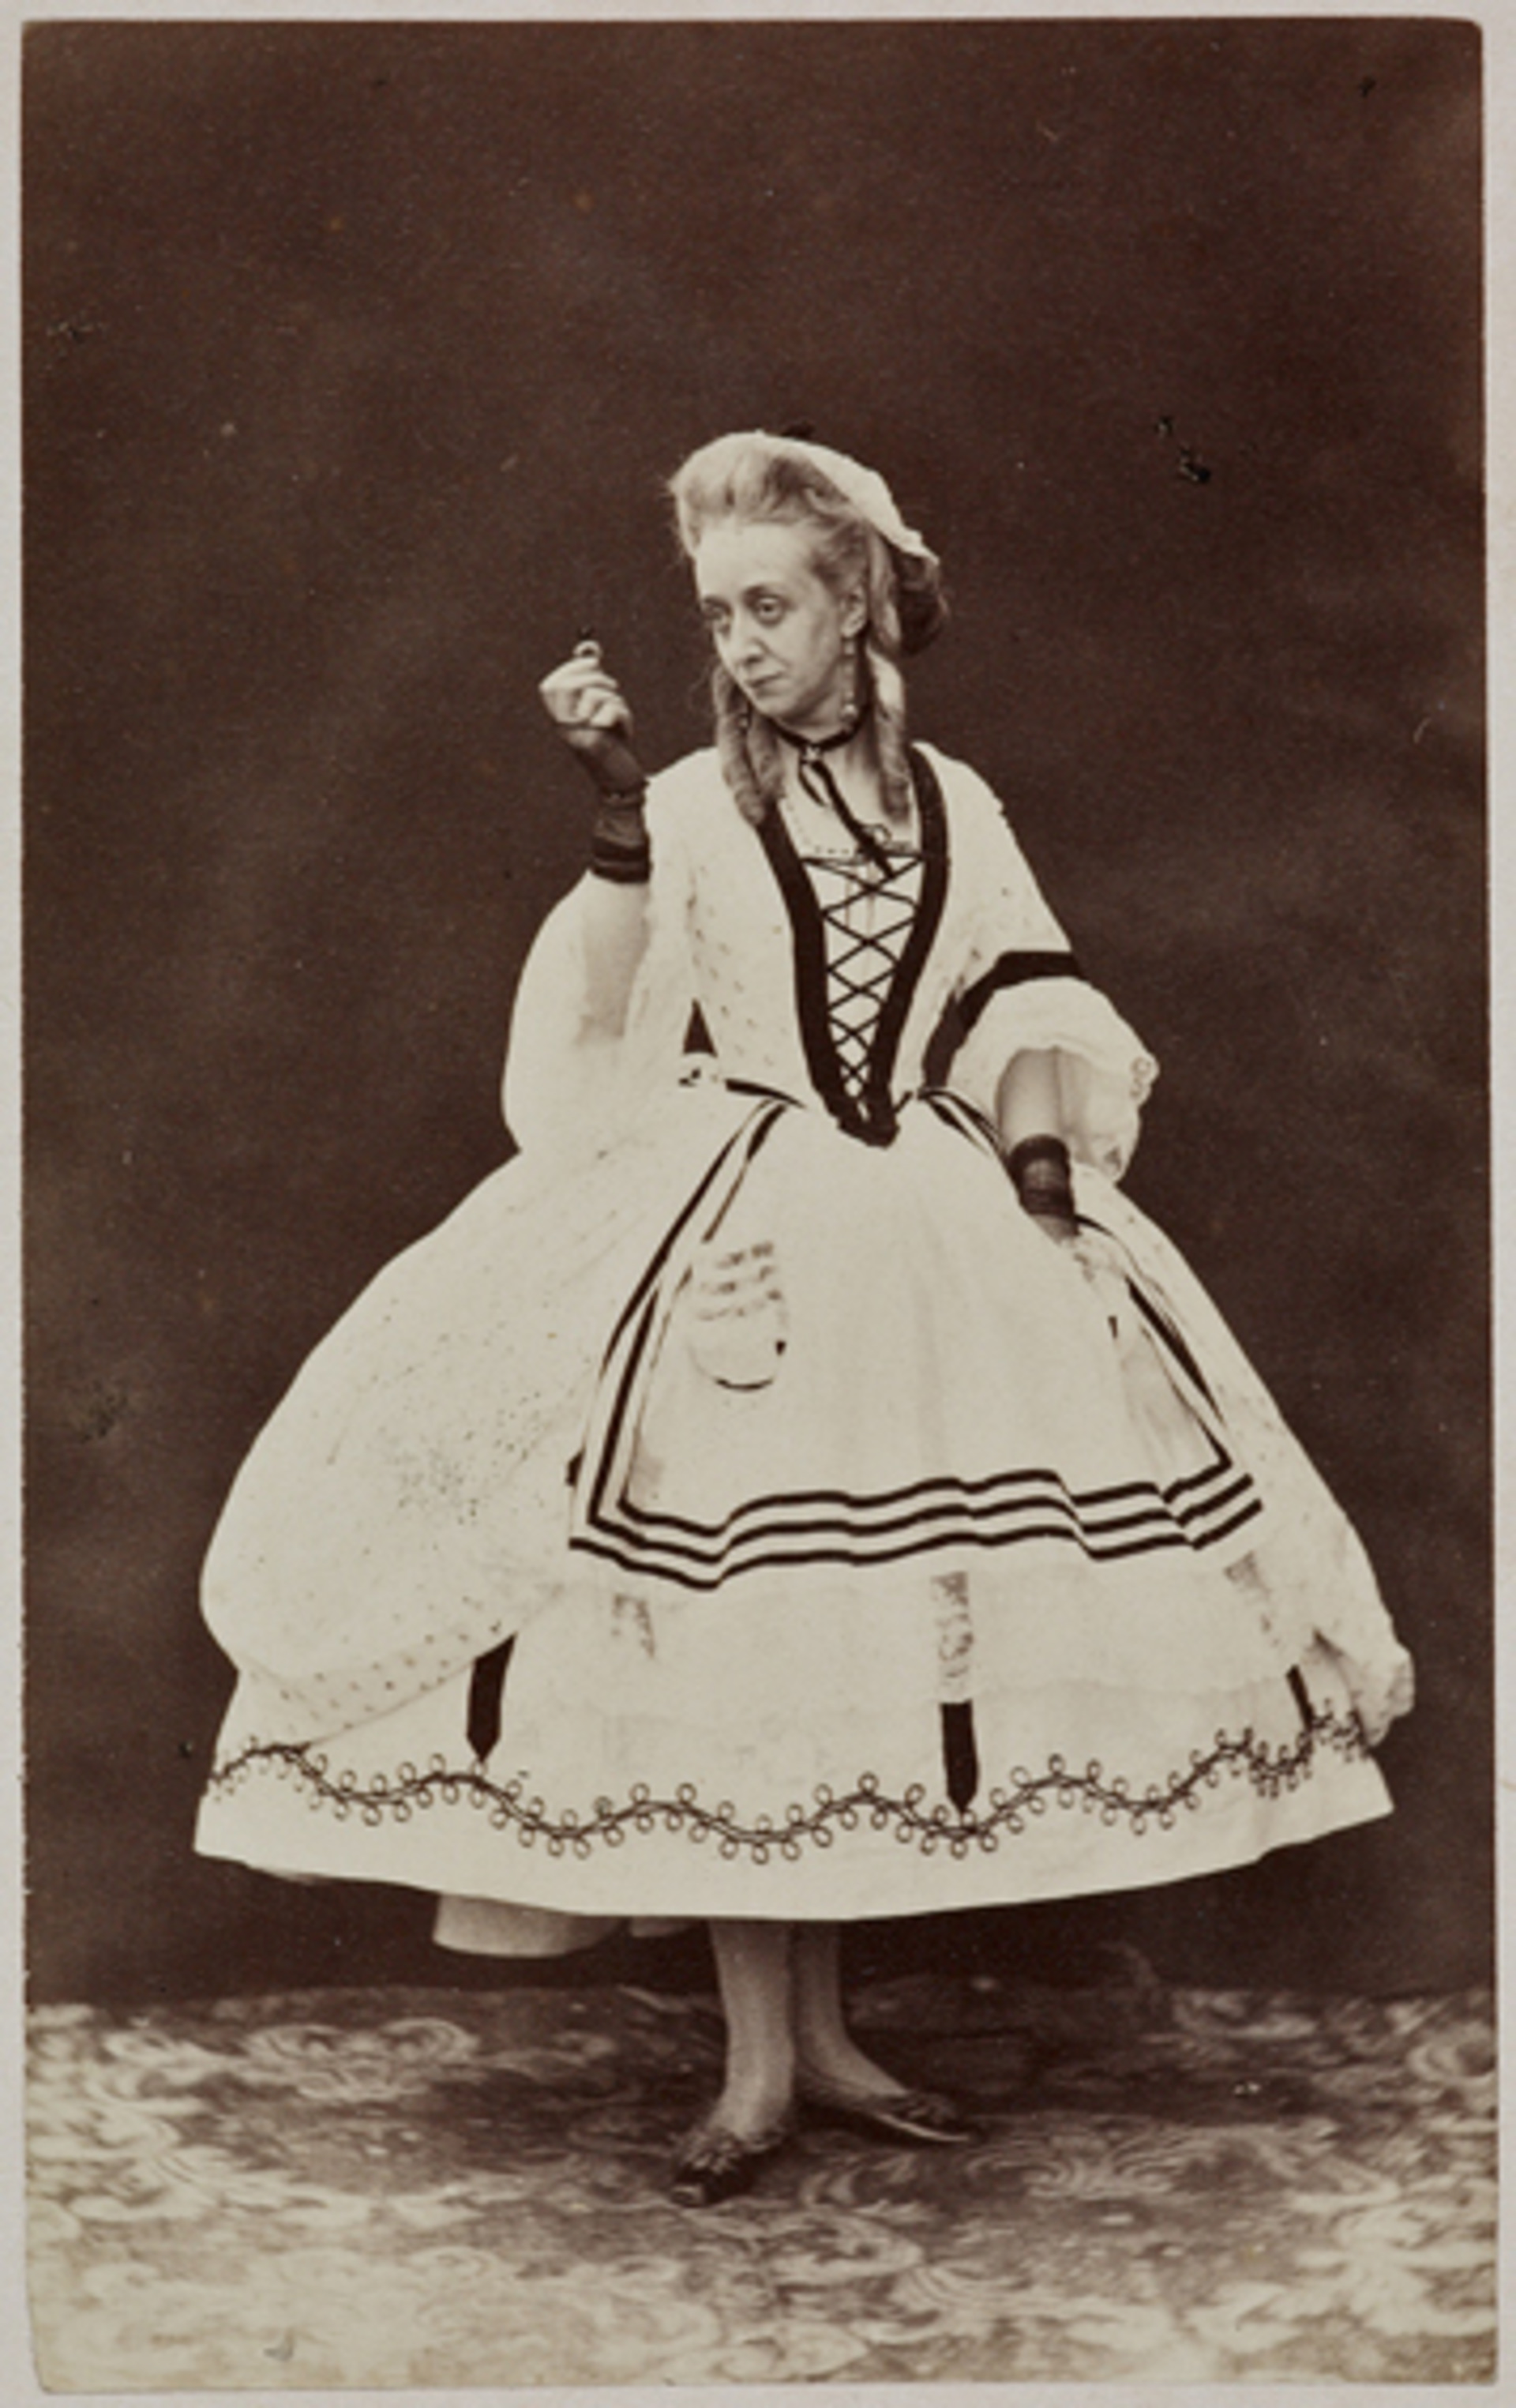 Miss Stapleton as Bobbin, in 'Popping the Question'